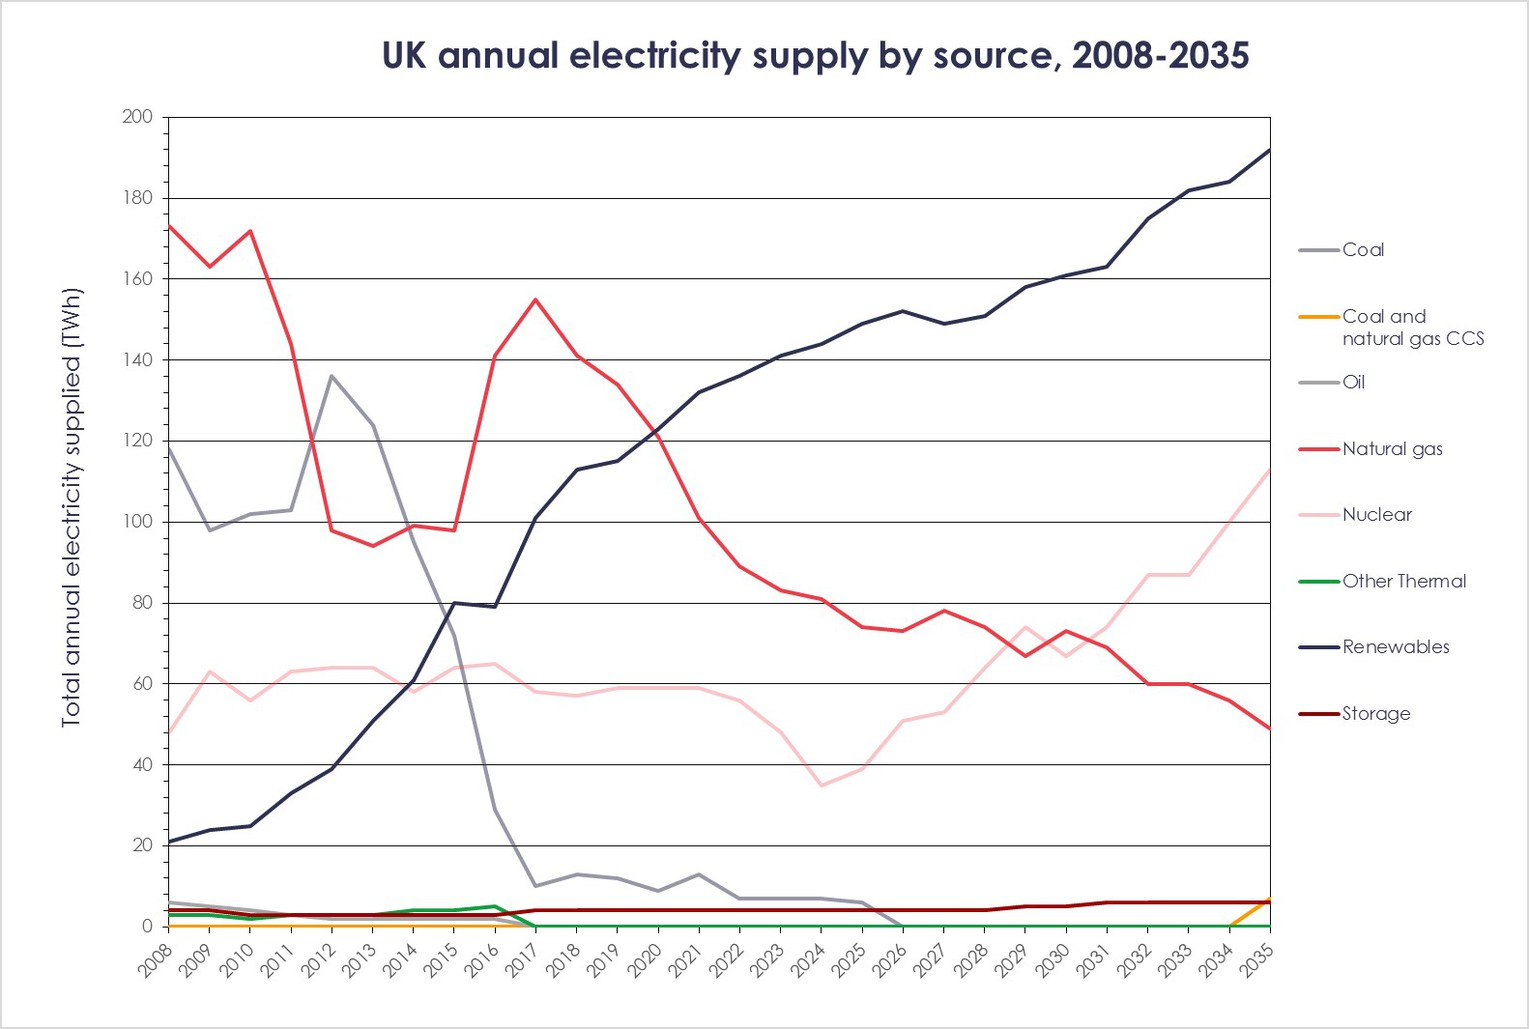 Graph of UK annual electricity supply